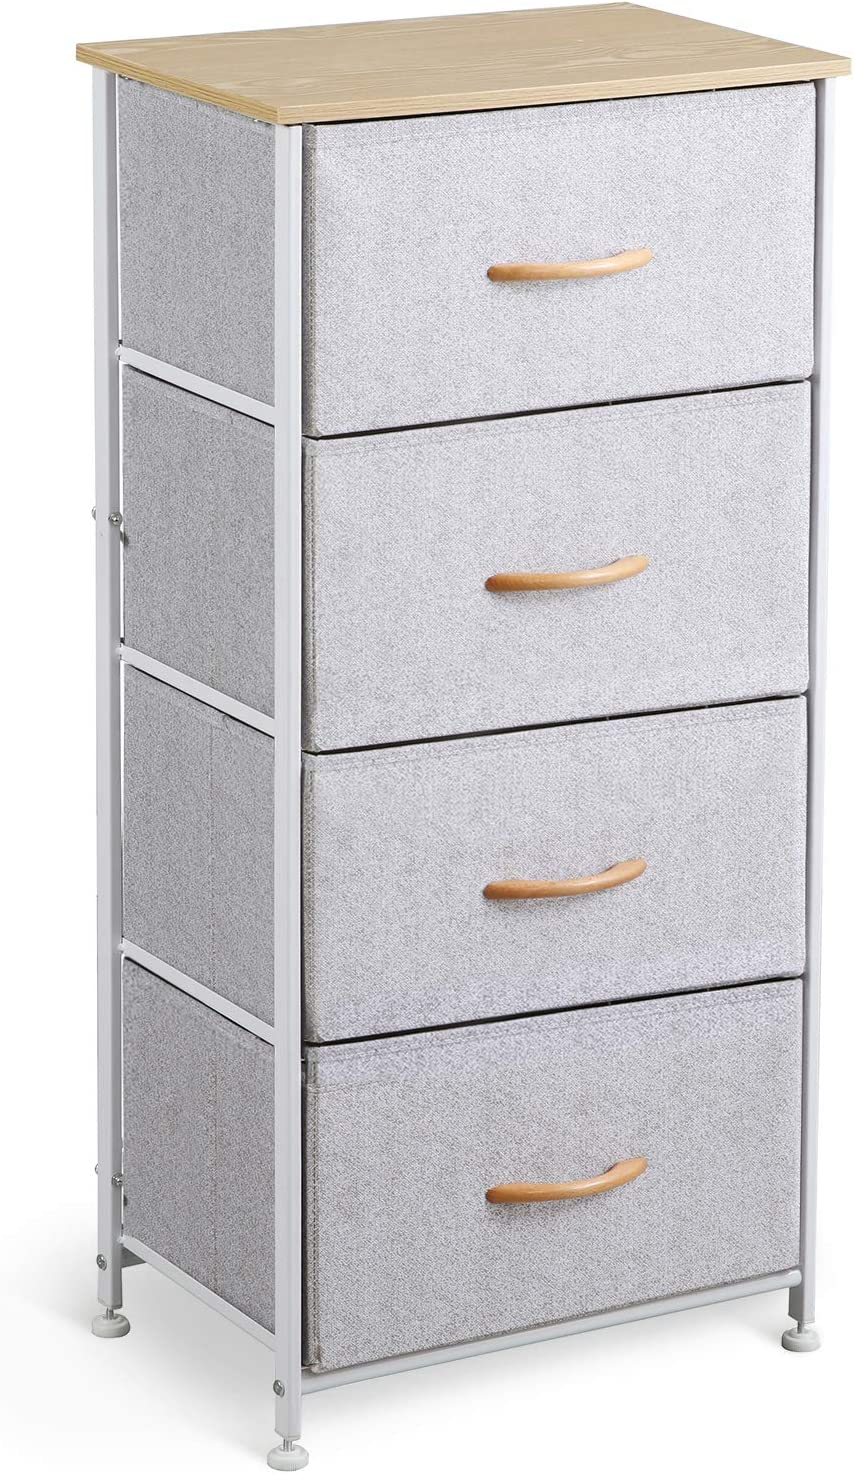 McNeil 4 Drawers Fabric Dresser Vertical Storage Tower Organizer Unit for Bedroom Office Laundry Closet Entryway Hallway Nursery Room, Gray